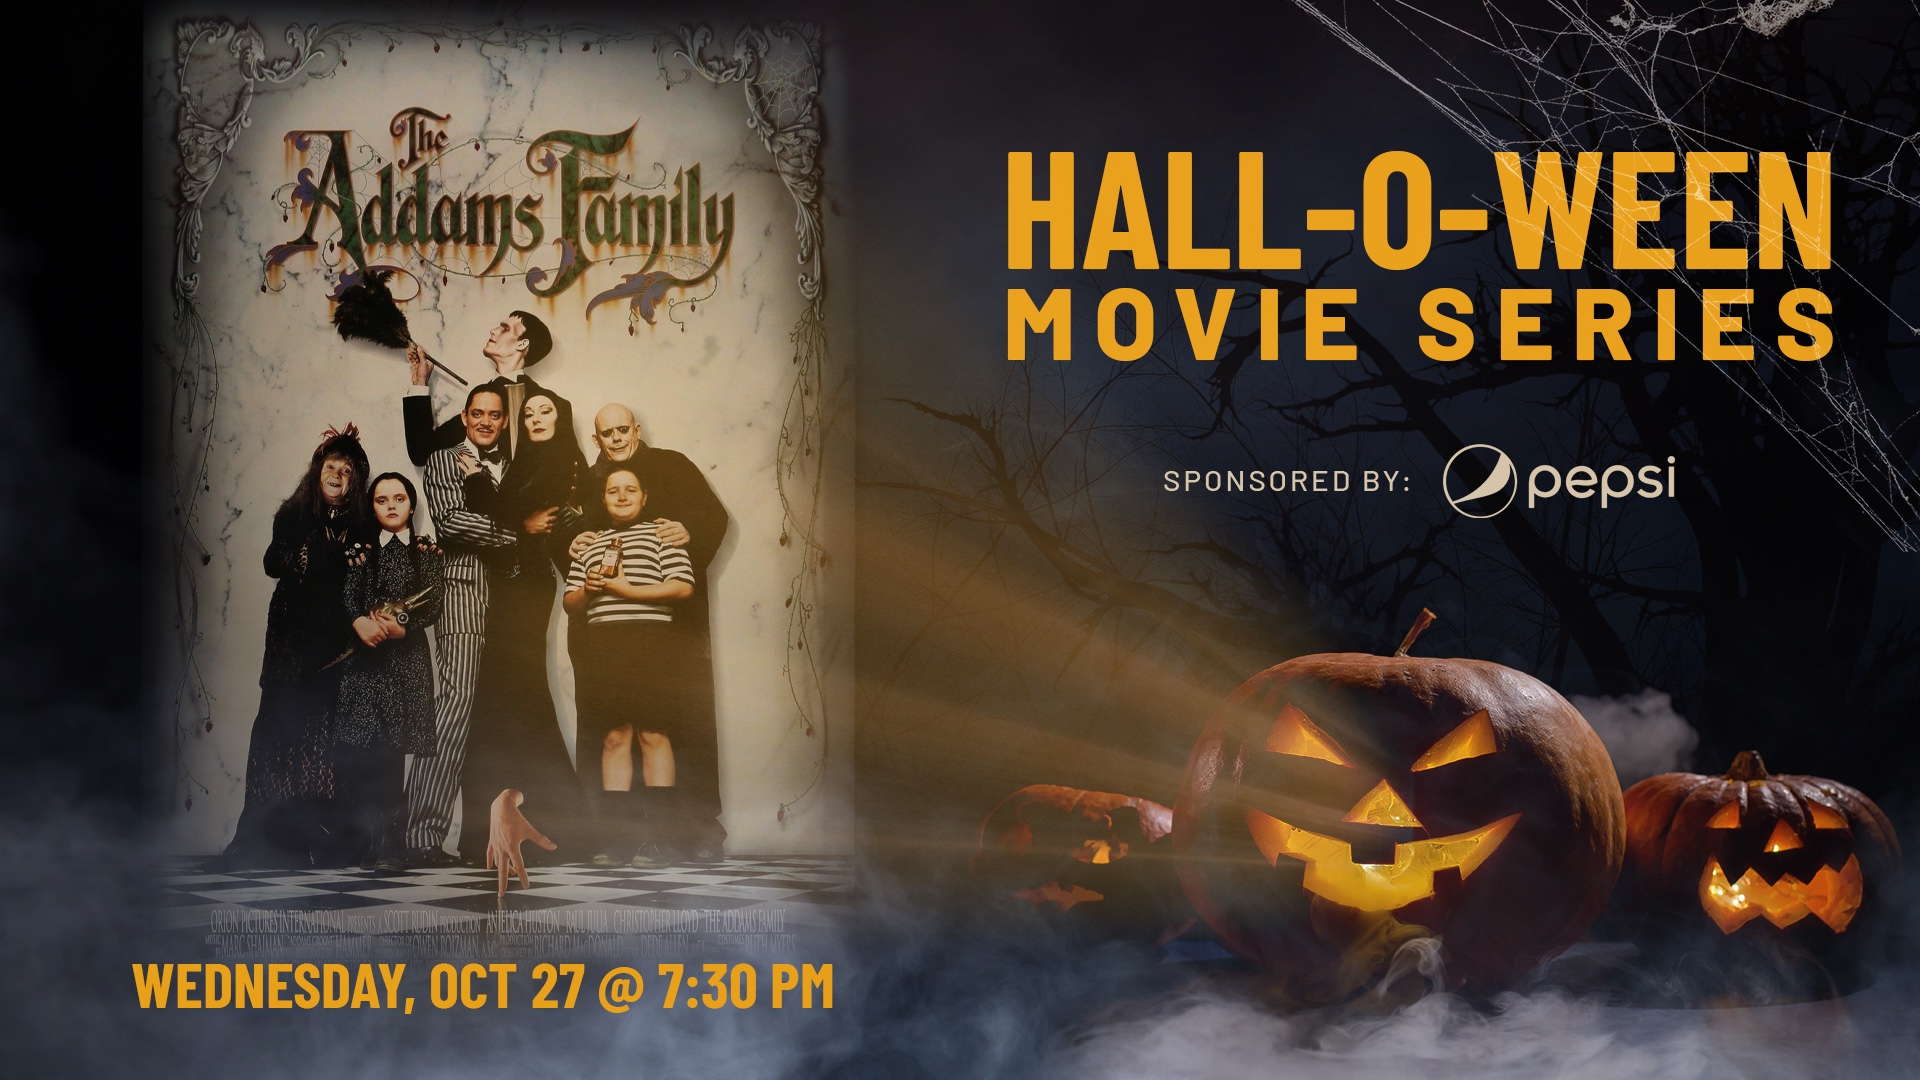 Promo image of Hall-O-Ween Movie Series: The Addams Family